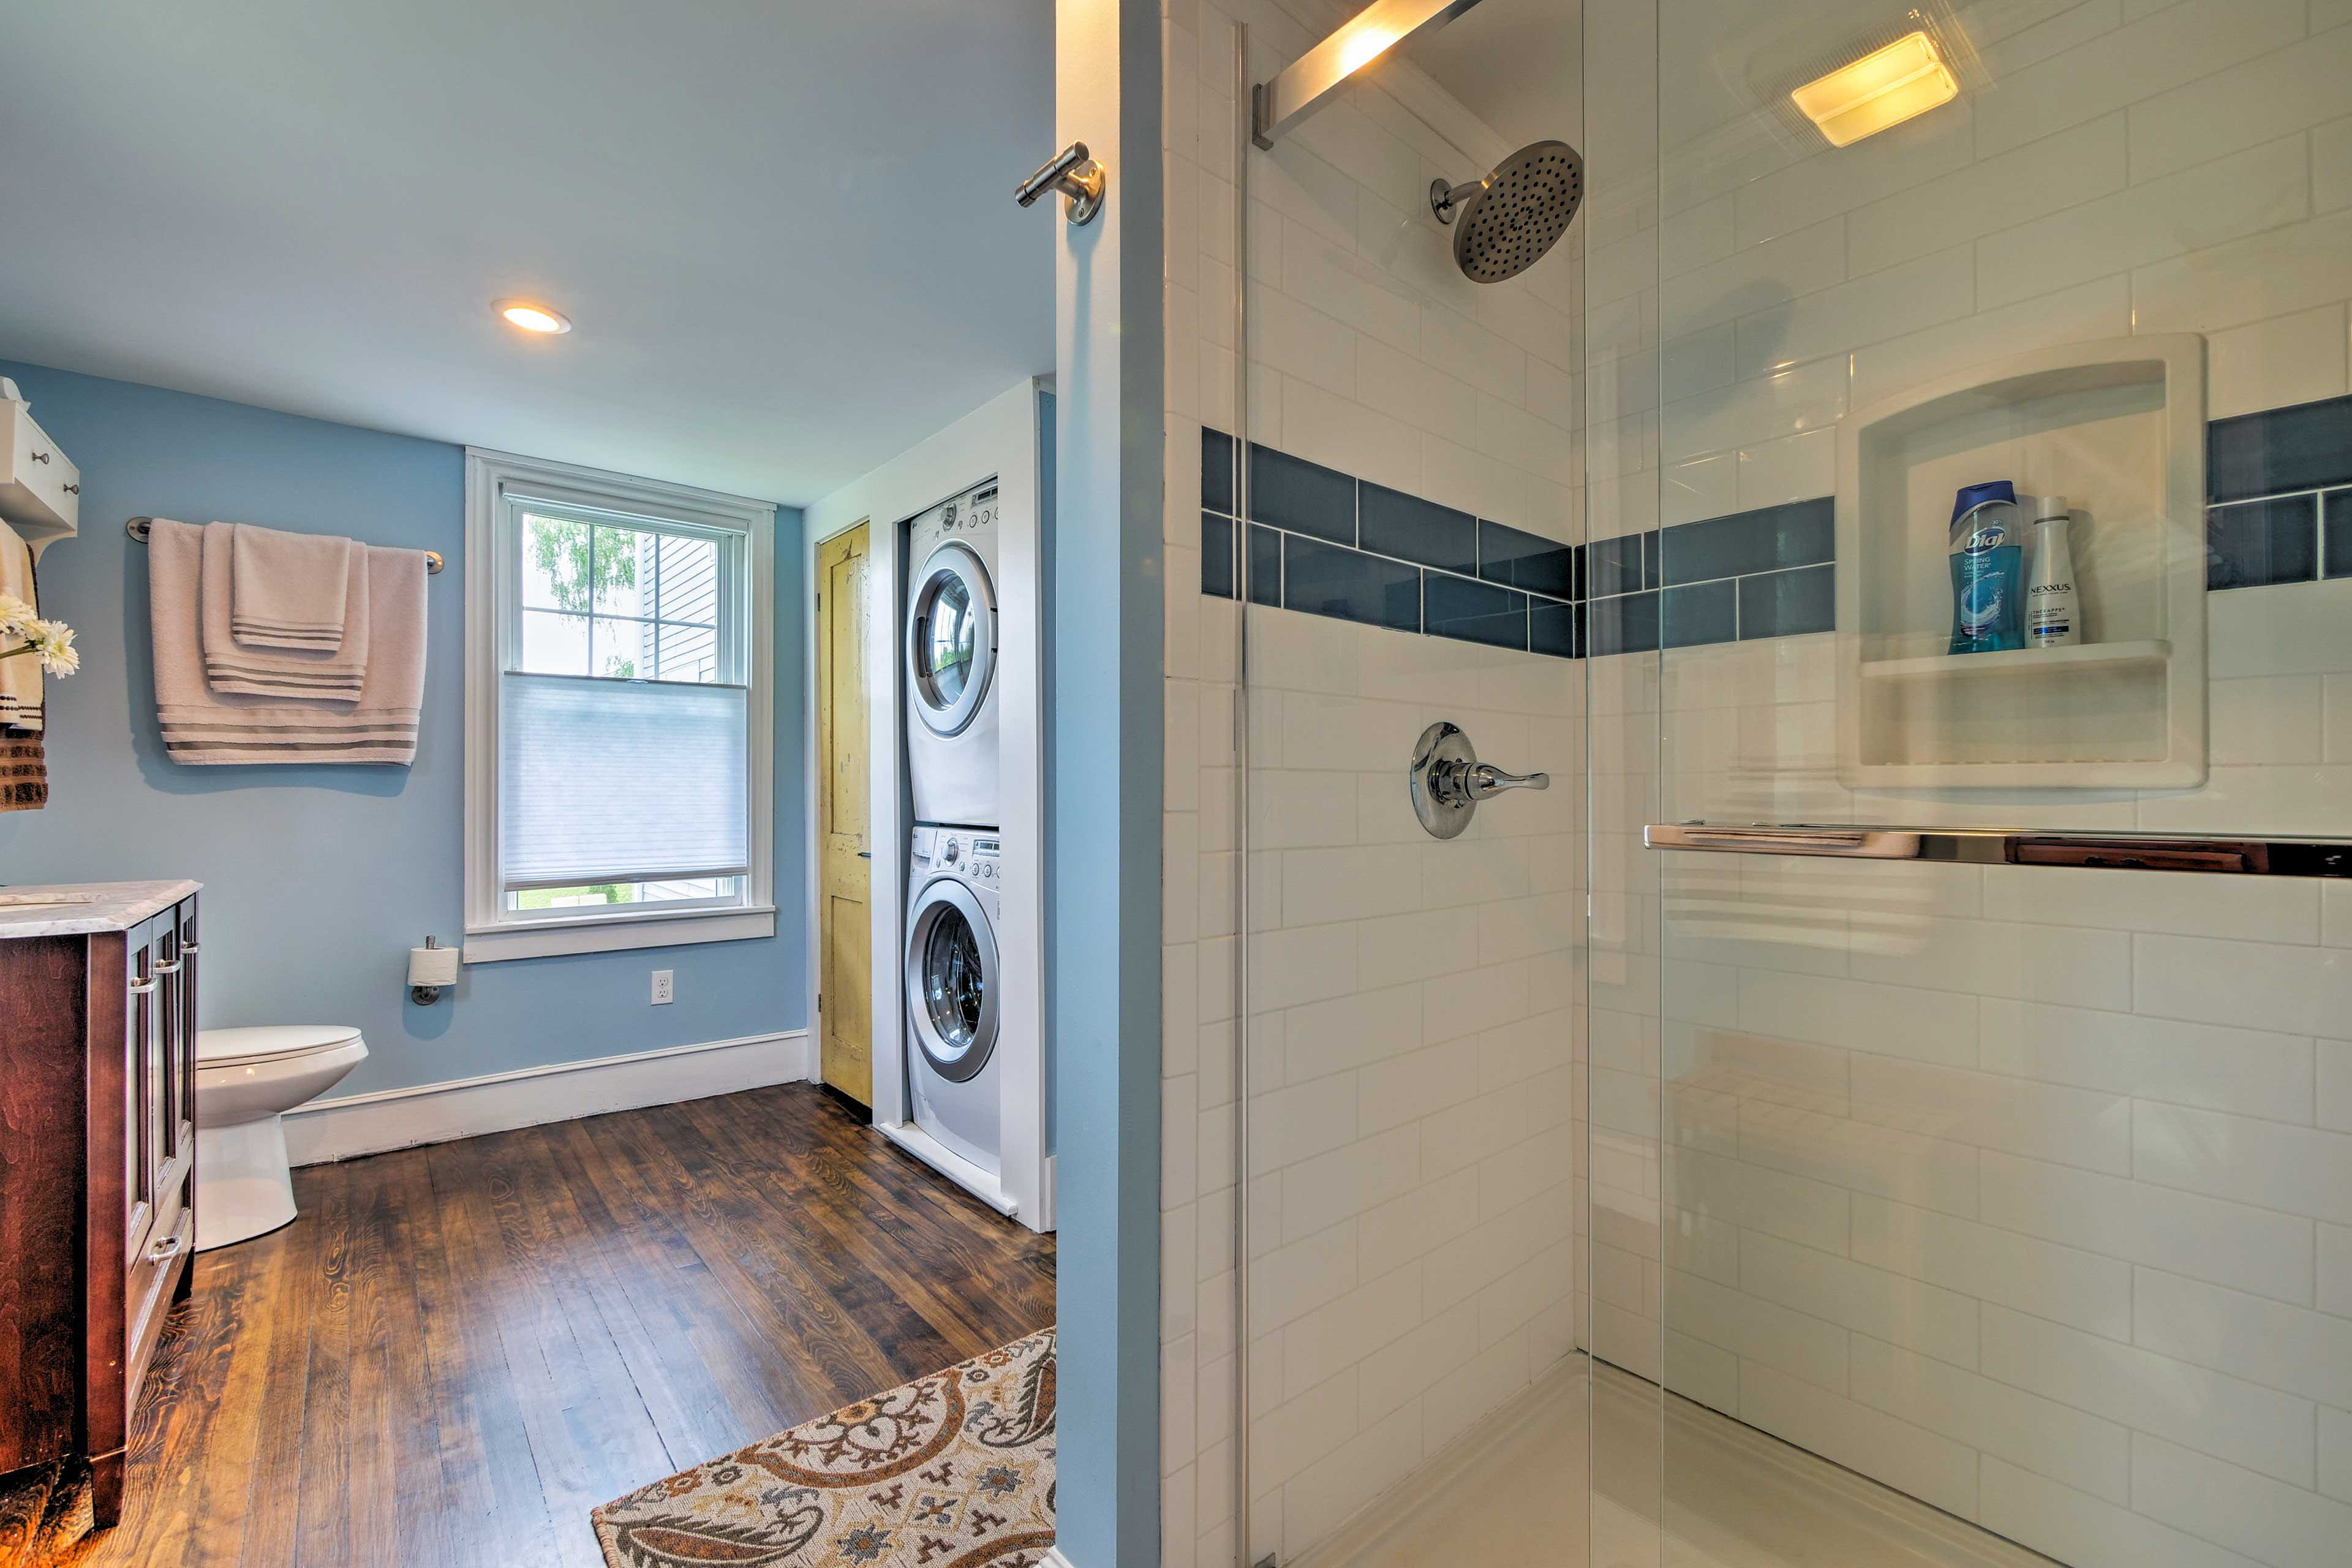 This home offers 2 pristine bathrooms!